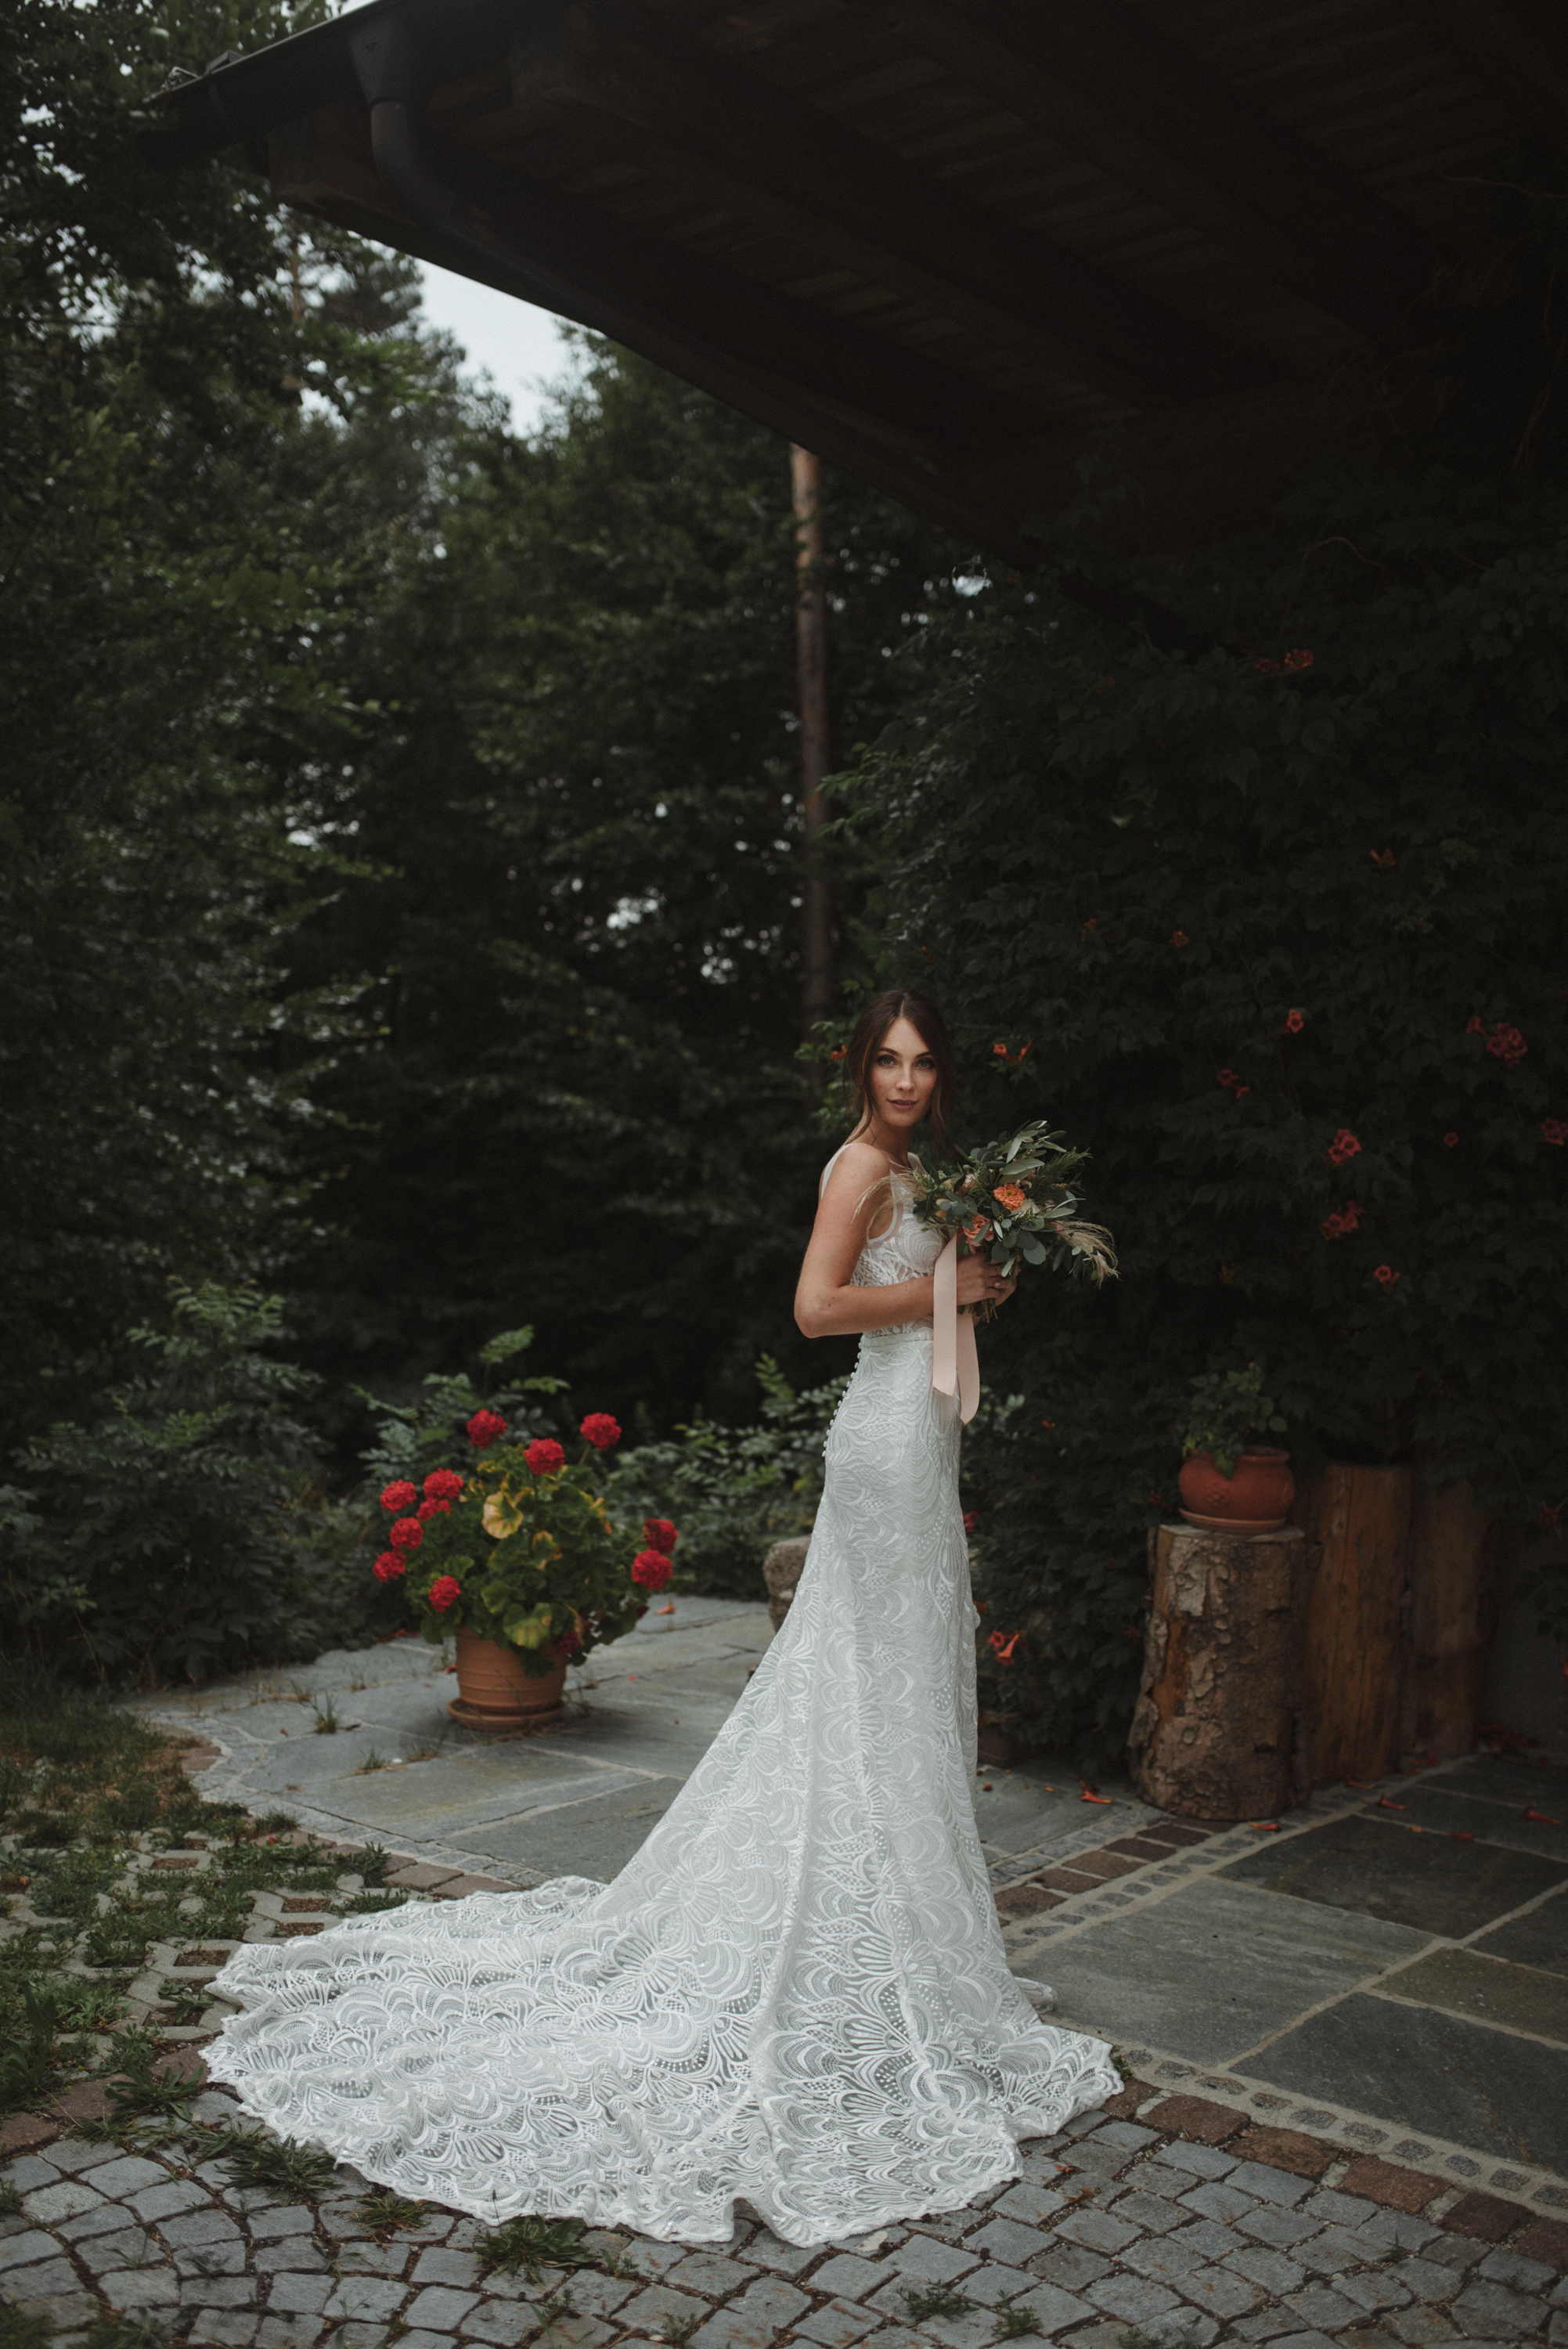 S+L-WeddingPreview-56